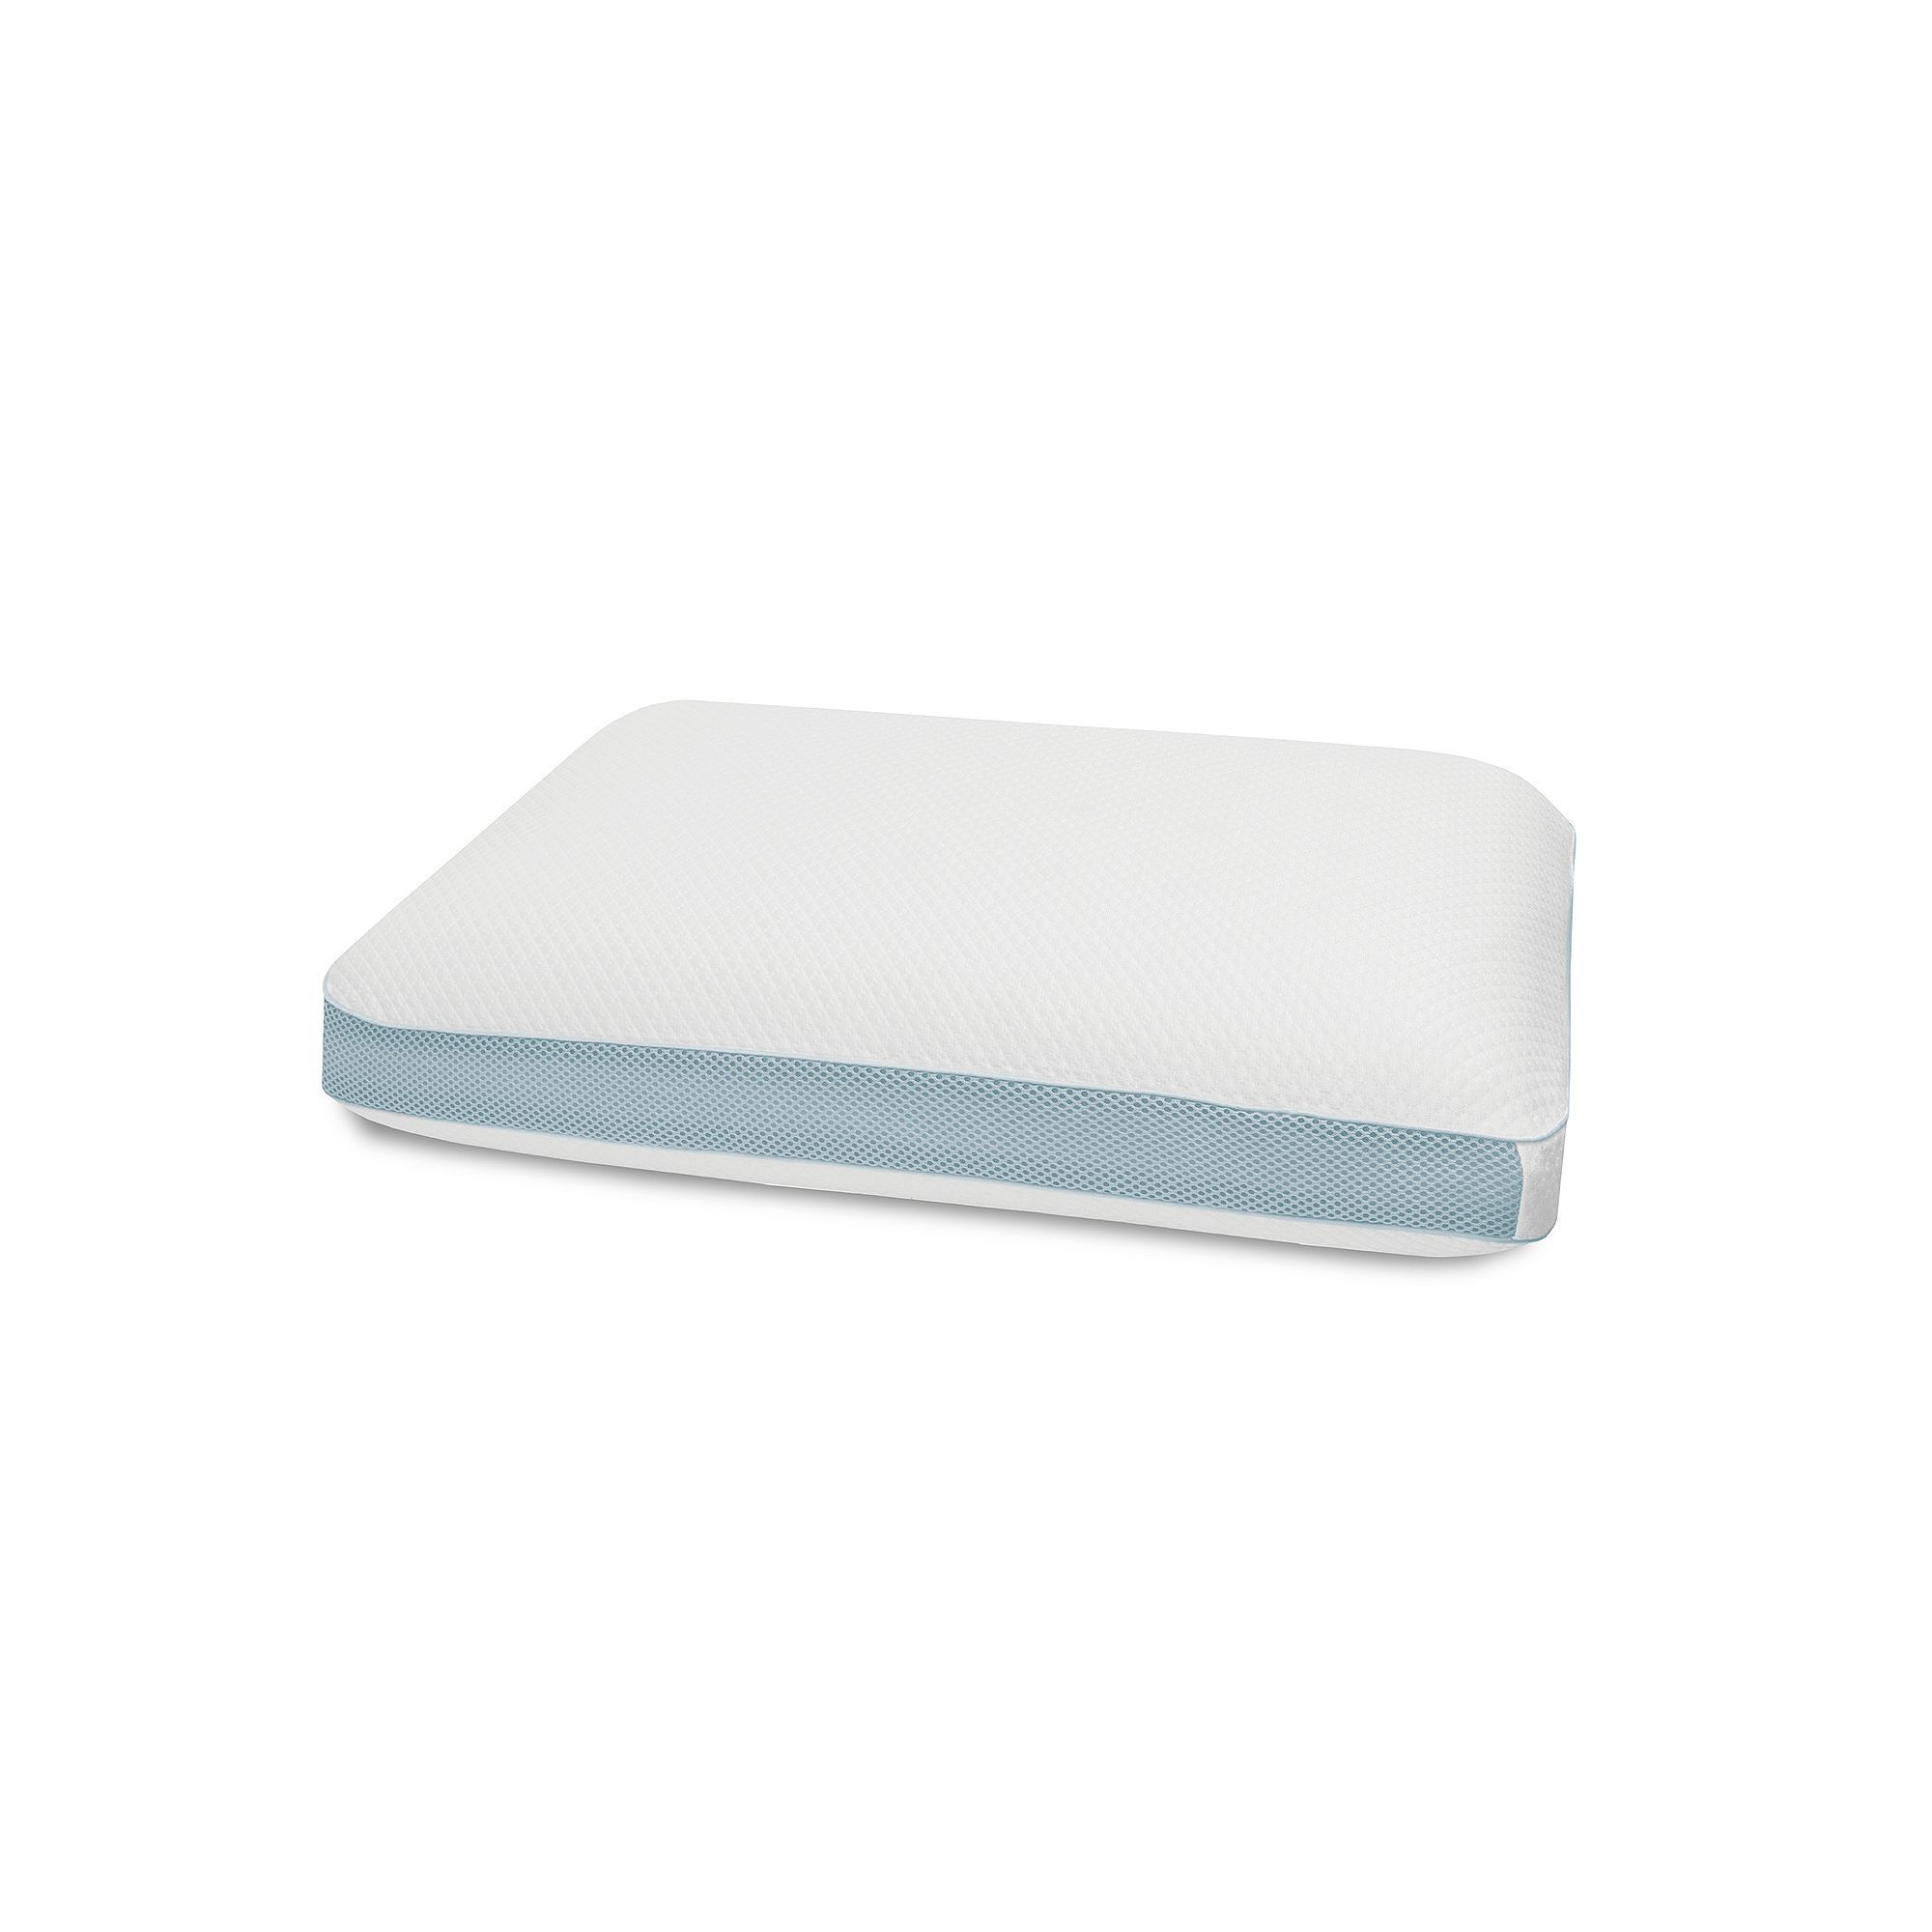 Sensorpedic Performance Extreme Cooling Memory Foam Pillow Foam